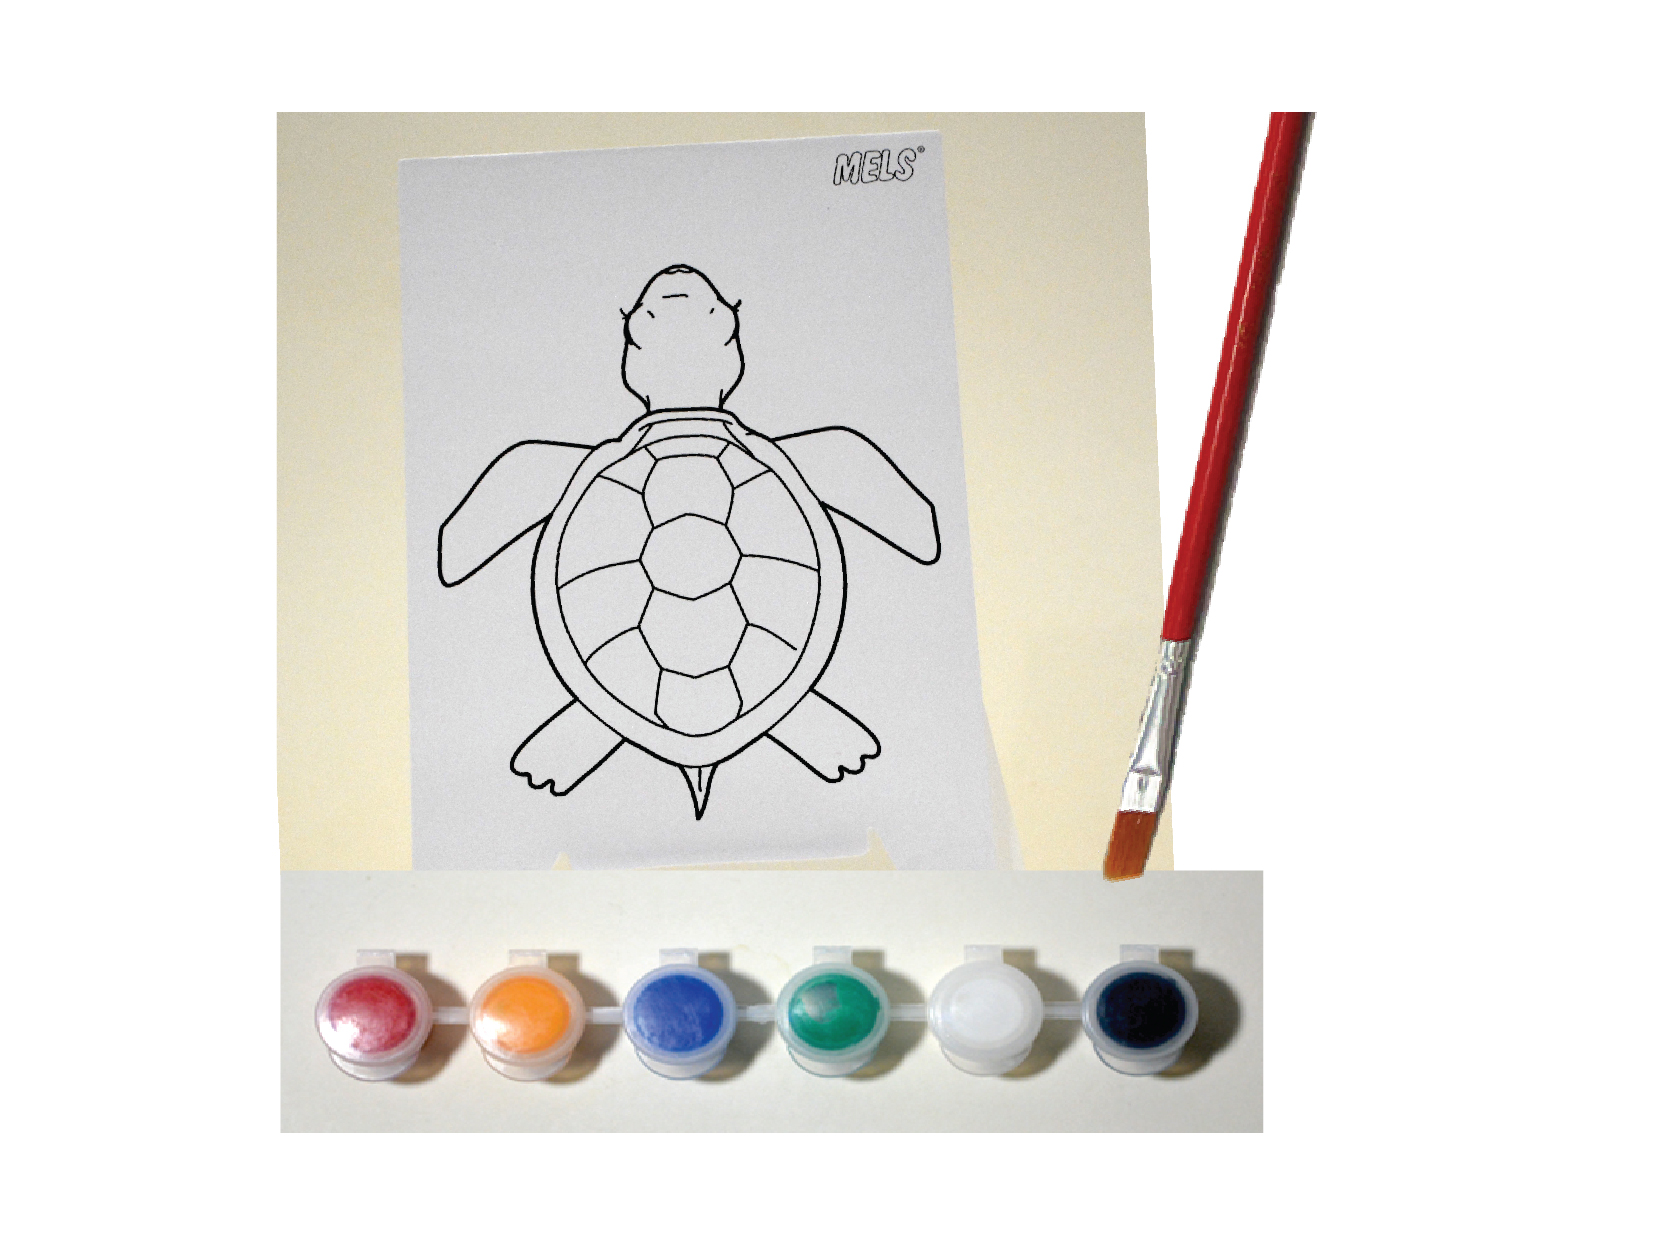 Project 1.3 A Turtle